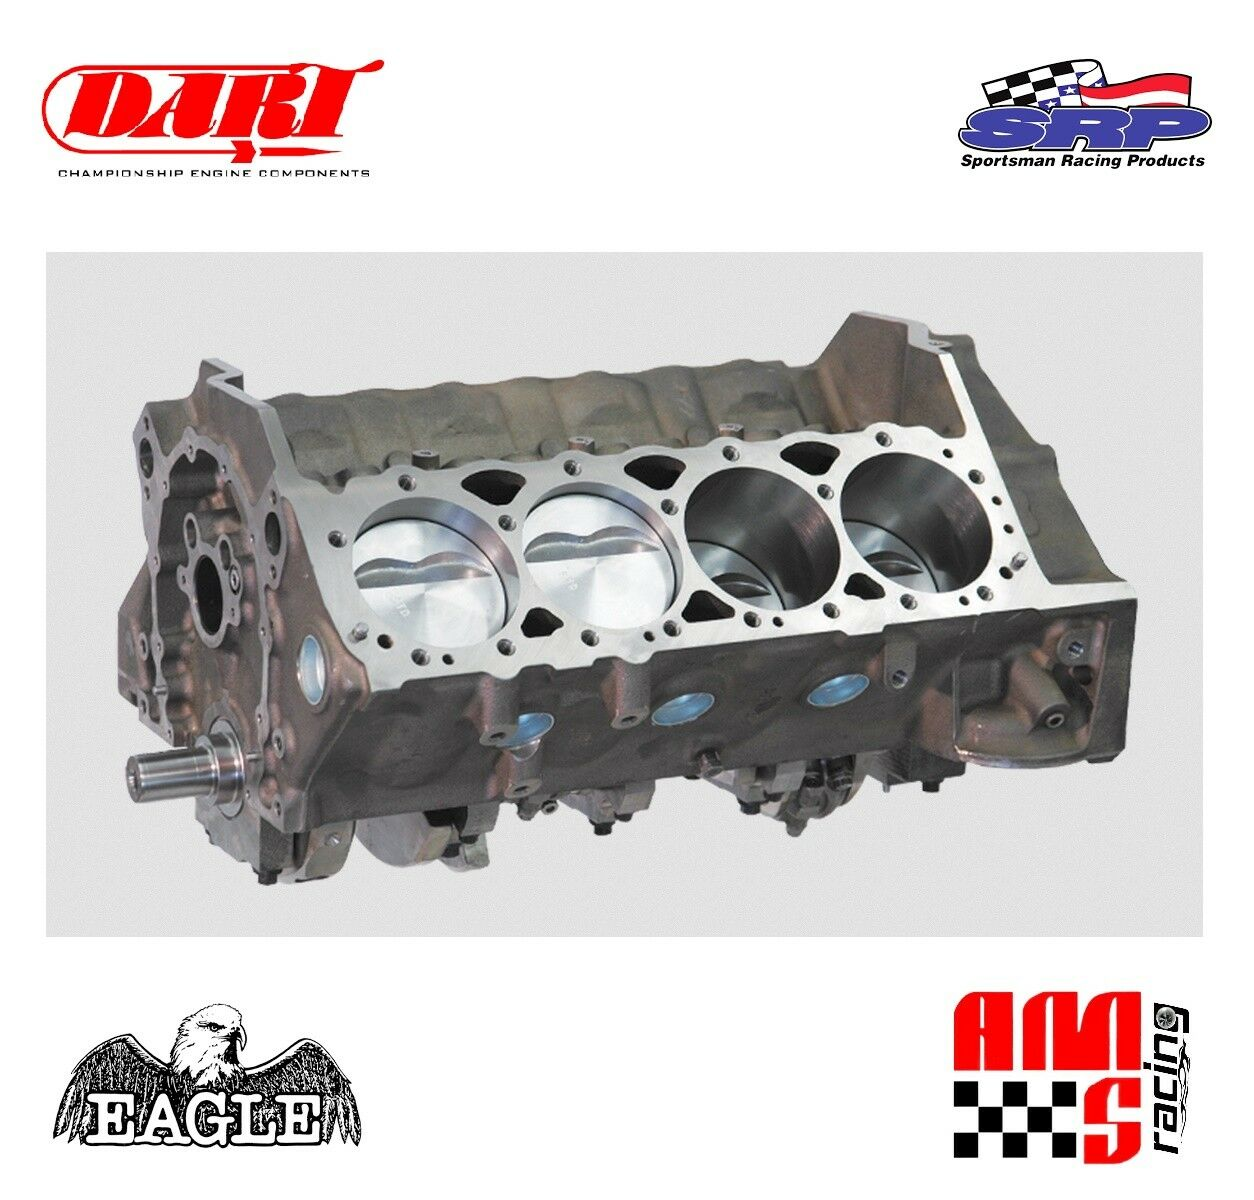 Ams racing 572 ci bbc dart big m forged stroker short block forged 1 of 1only 1 available malvernweather Choice Image